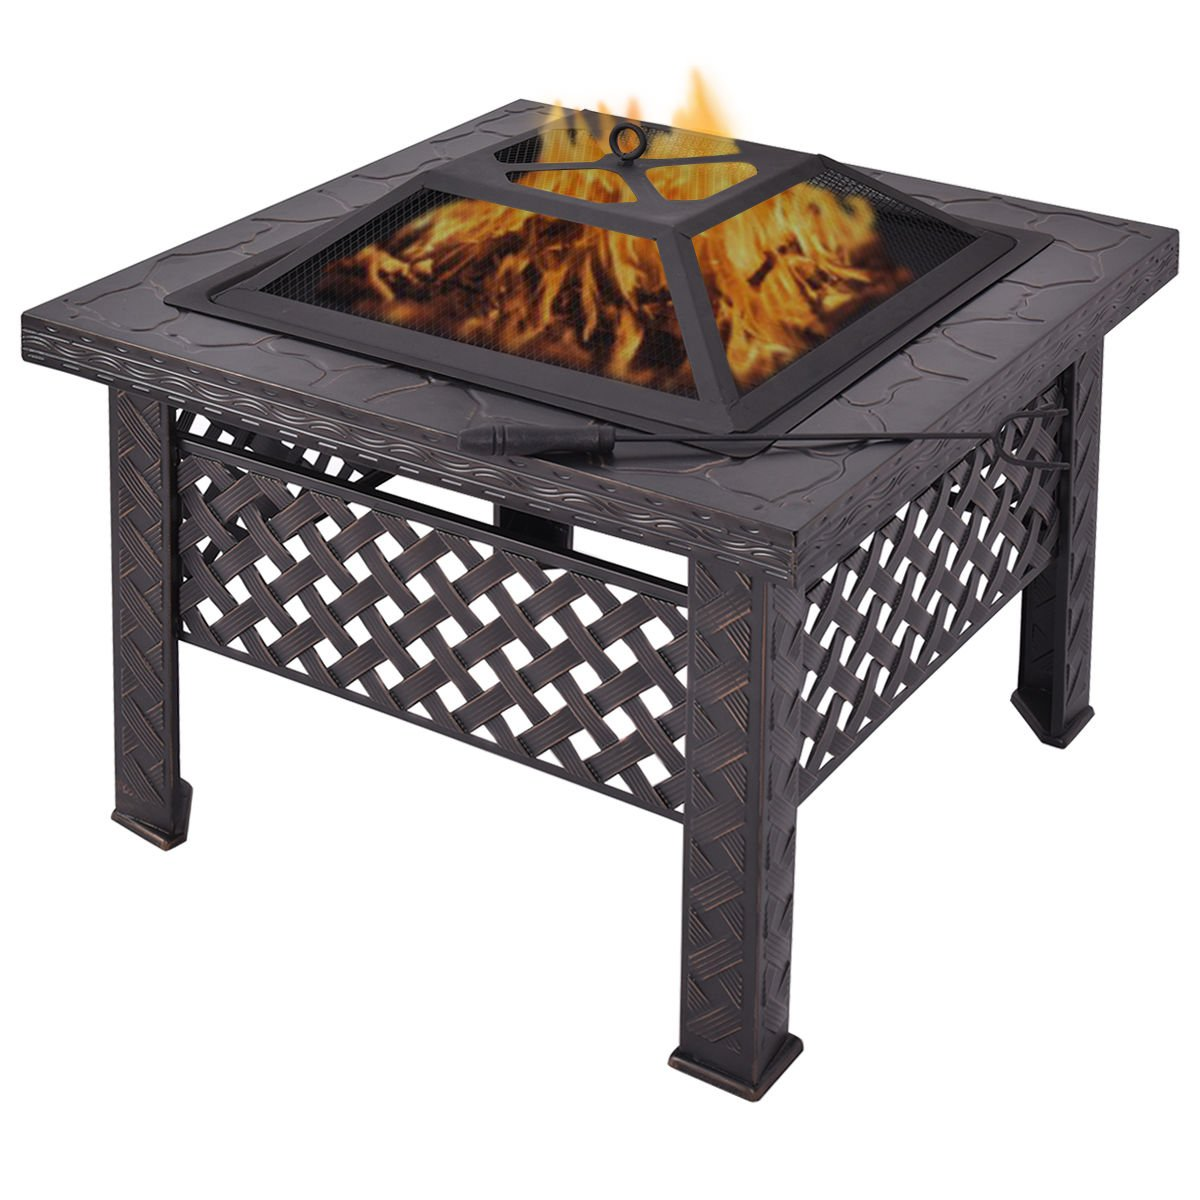 Outdoor Metal Fire Pit Backyard Patio Garden Square Stove With Poker 26 Inch by Jarad